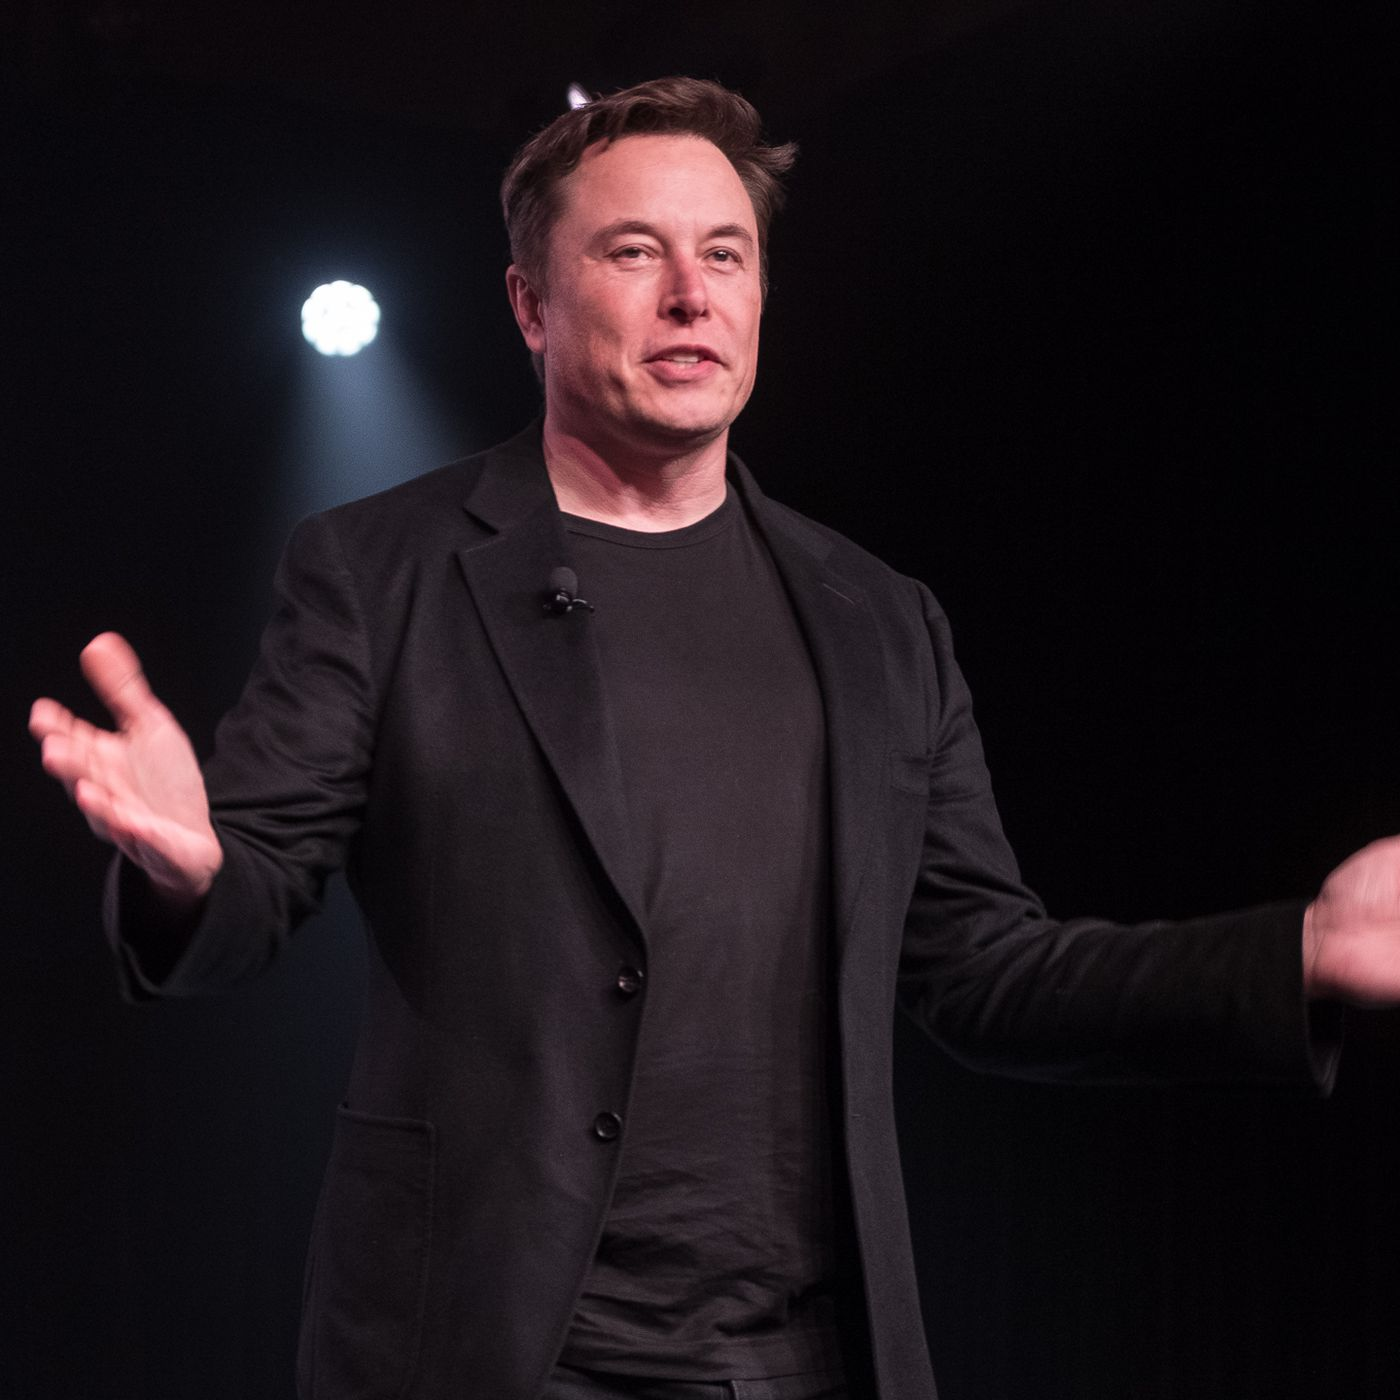 Elon Musk Phone number, Email Id, Fanmail, Instagram, Tiktok, and Contact Details